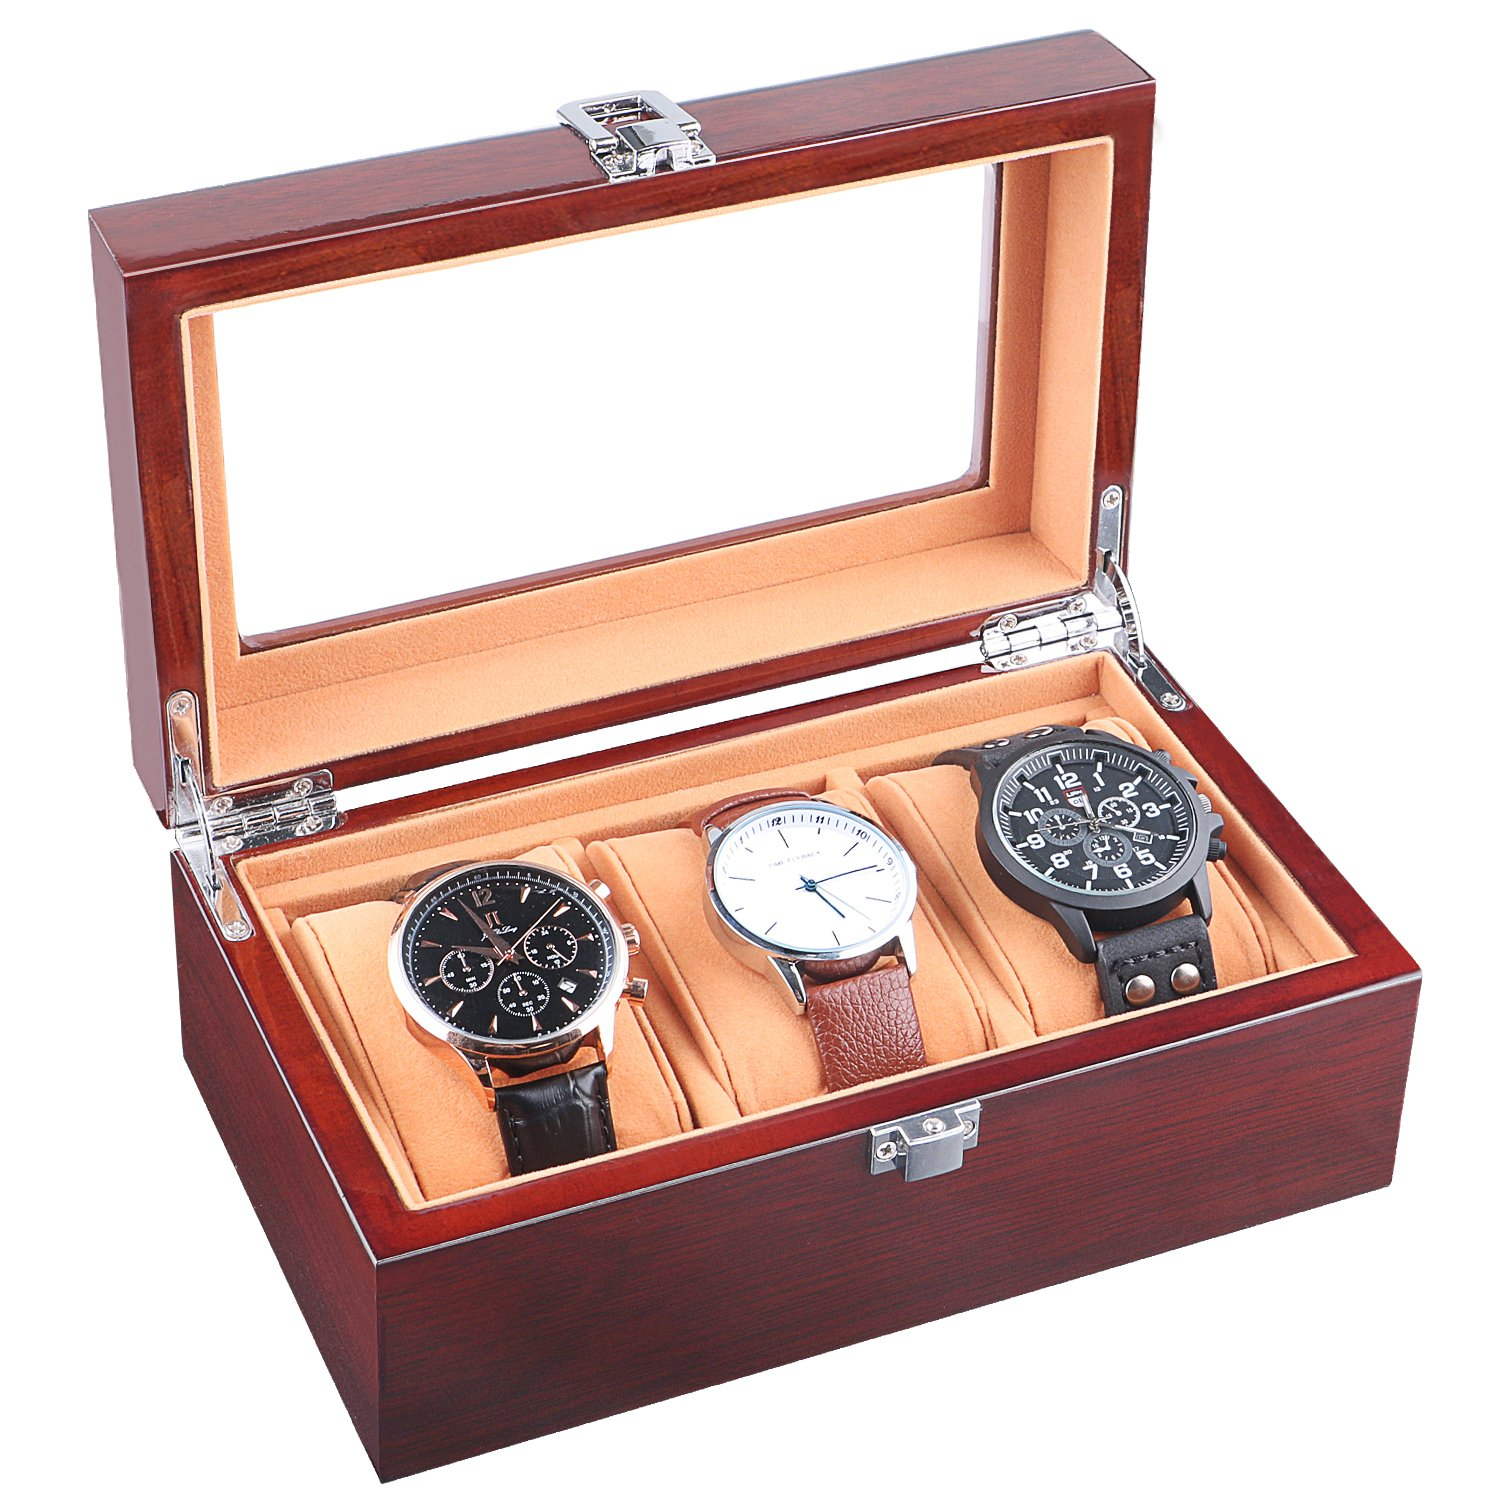 JinDiLong Watch Box for Men 3 Slots Wood Organizer Storage Case Mens Jewelry Watches Collection Display Holder Boasts Glass Top & Flannel Pillow